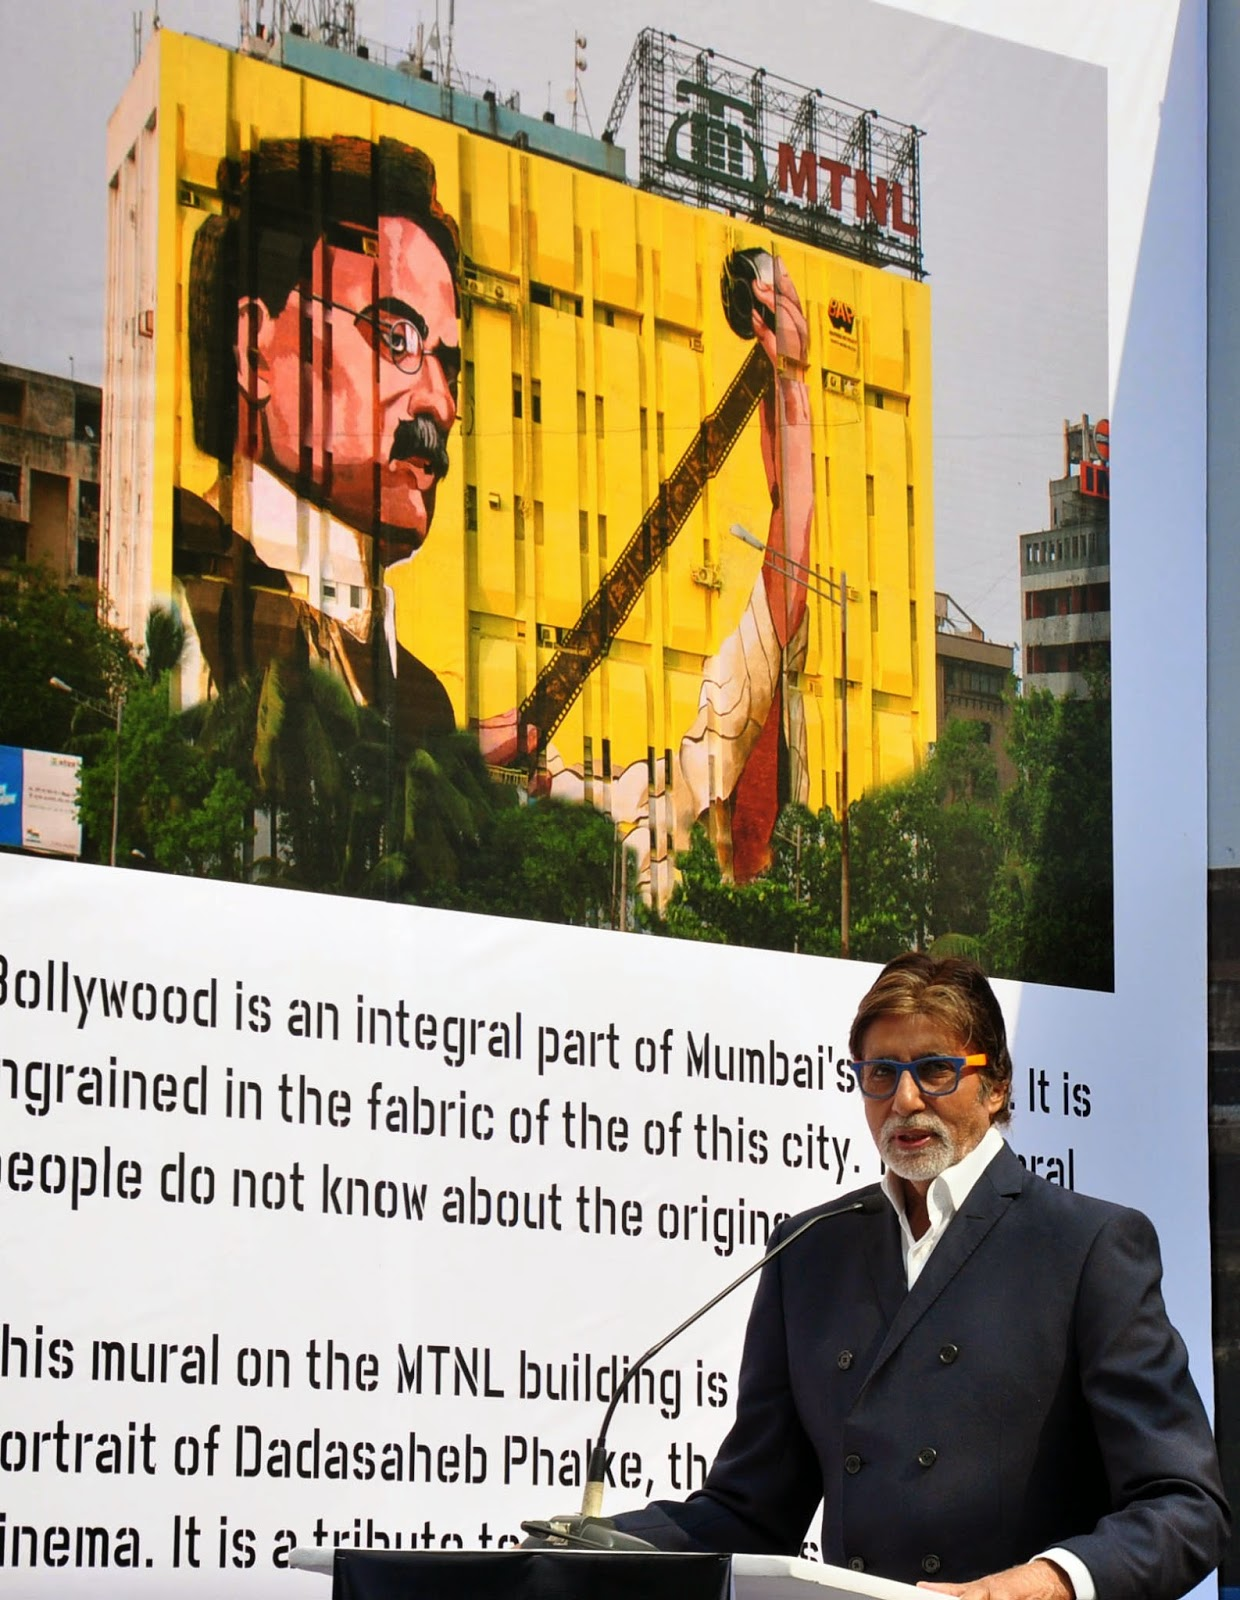 Amitabh Bachchan unveiled the mural of the father of Indian Cinema Dadasaheb Phalke in Mumbai